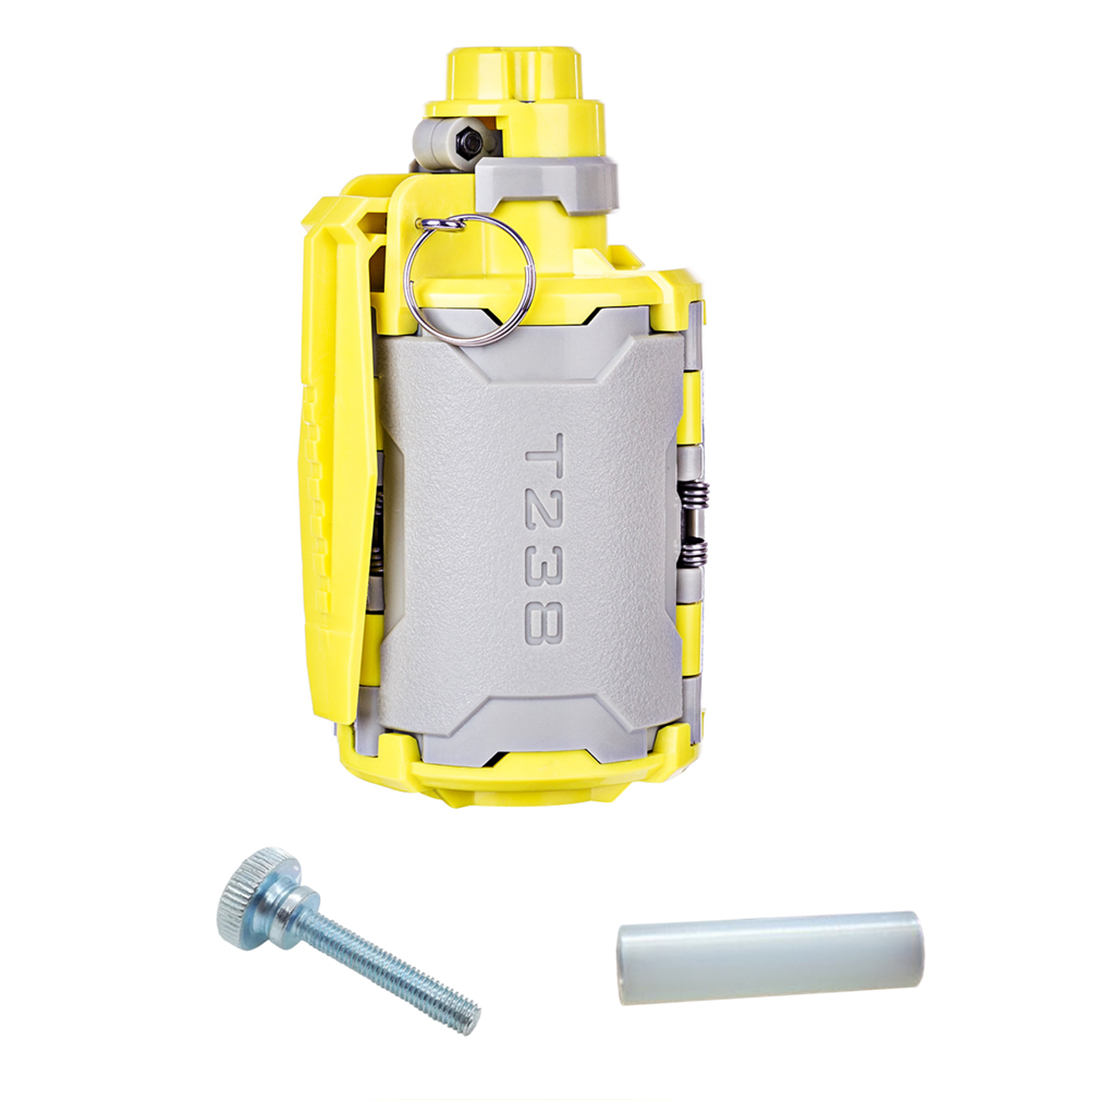 New T238 V2 Large Capacity Grenade Toy With Time-Delayed Function For Gel Ball BBs Airsoft Wargame +Thumb Knob Bolts+Screw Nut